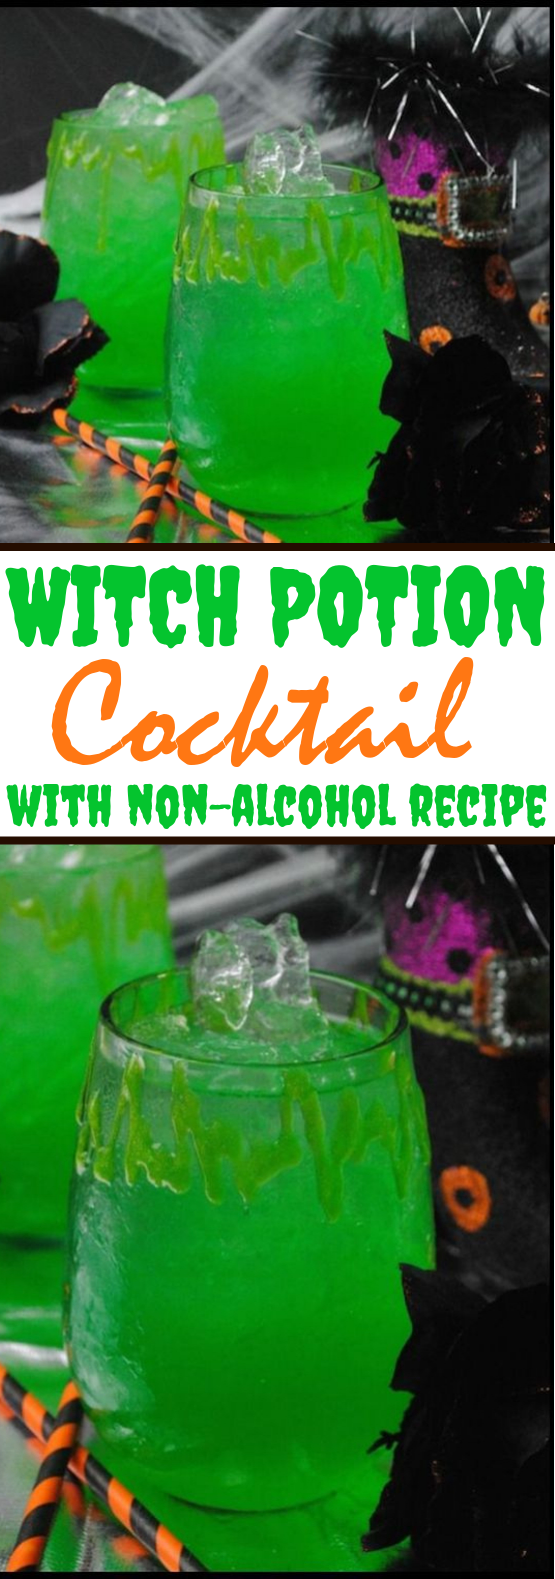 Witch Potion Cocktail #drinks #cocktails #alcohol #halloween #party